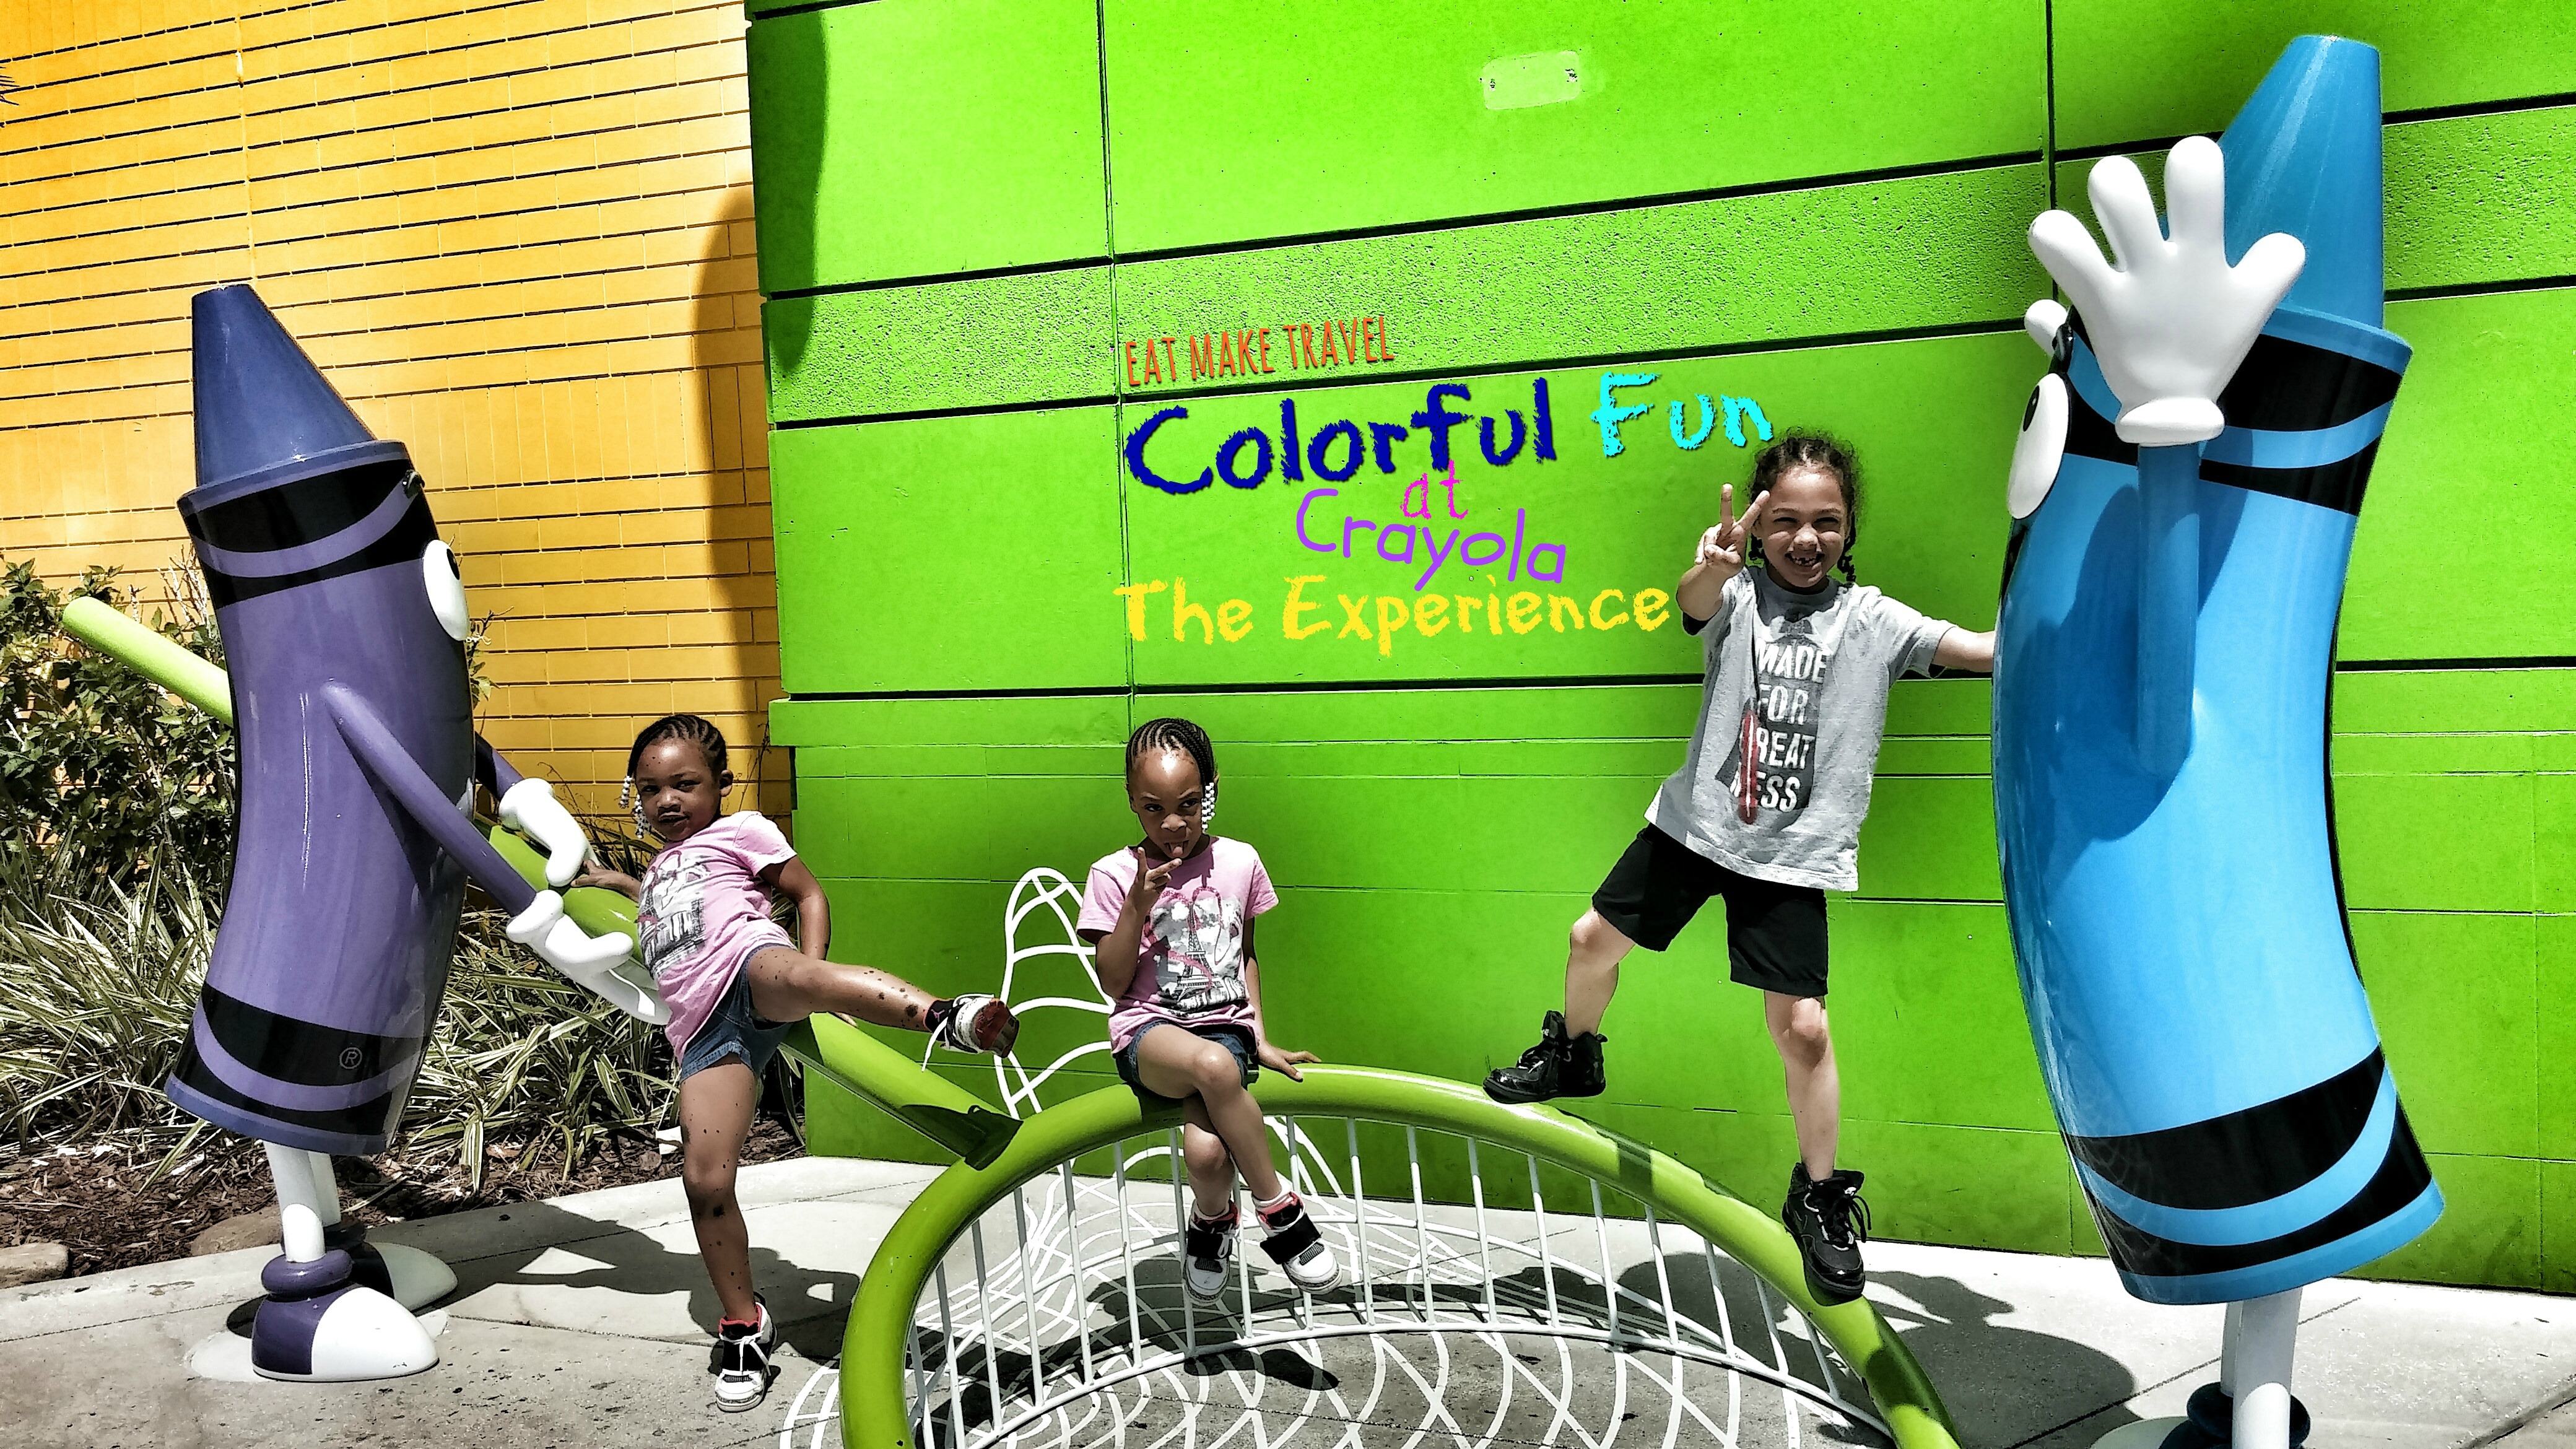 Colorful Fun at Crayola the Experience